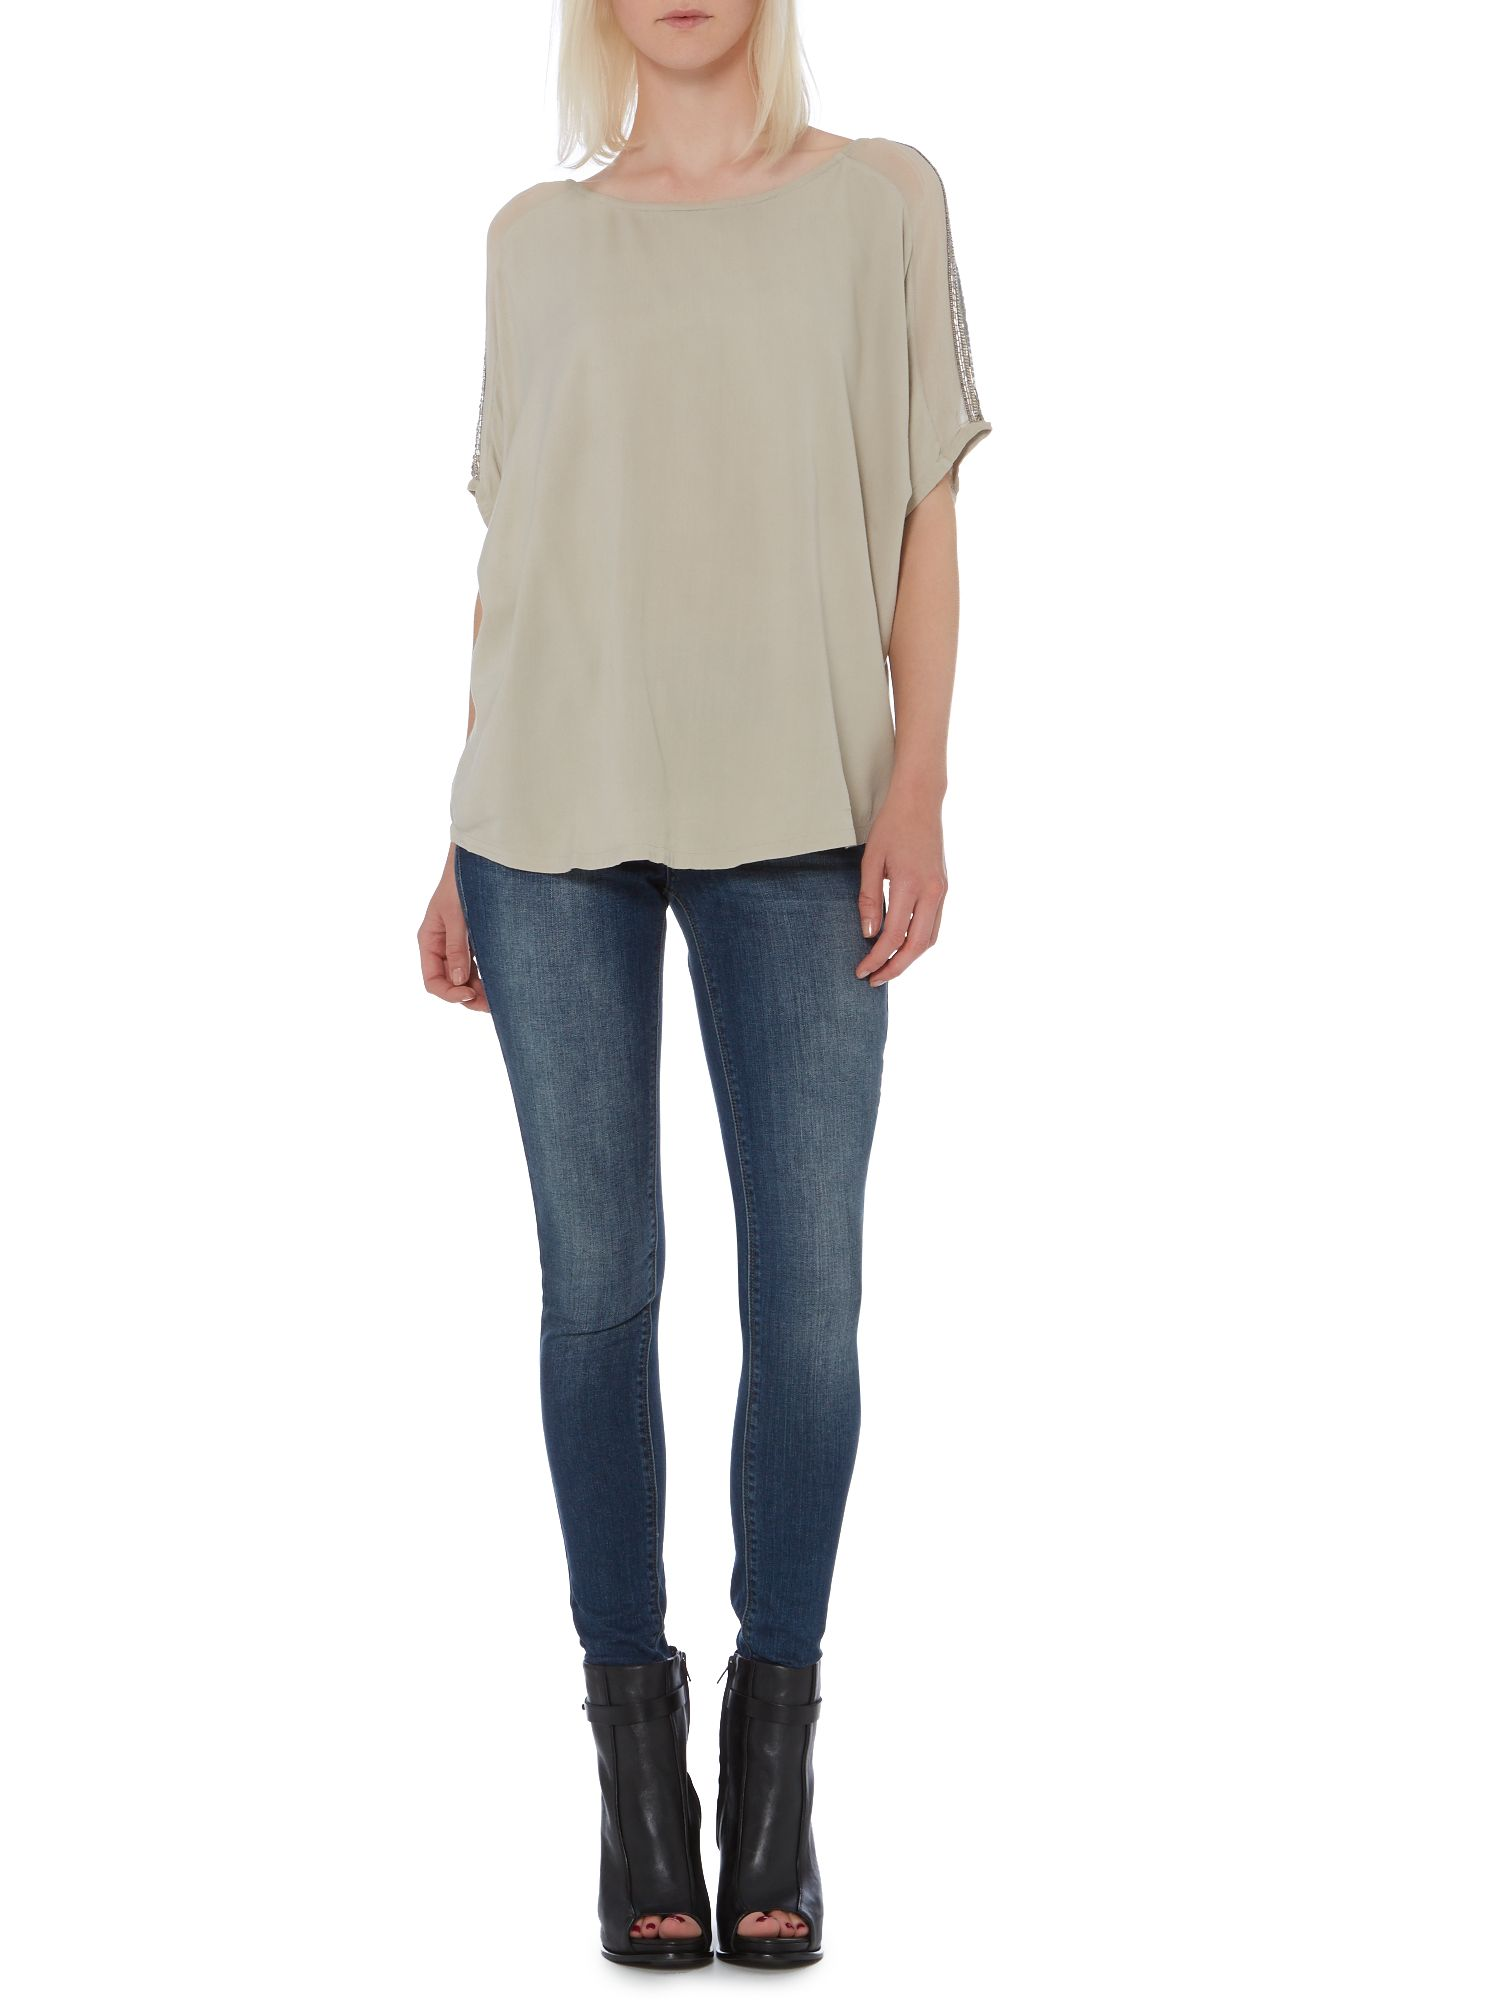 Embellished shoulder woven tee